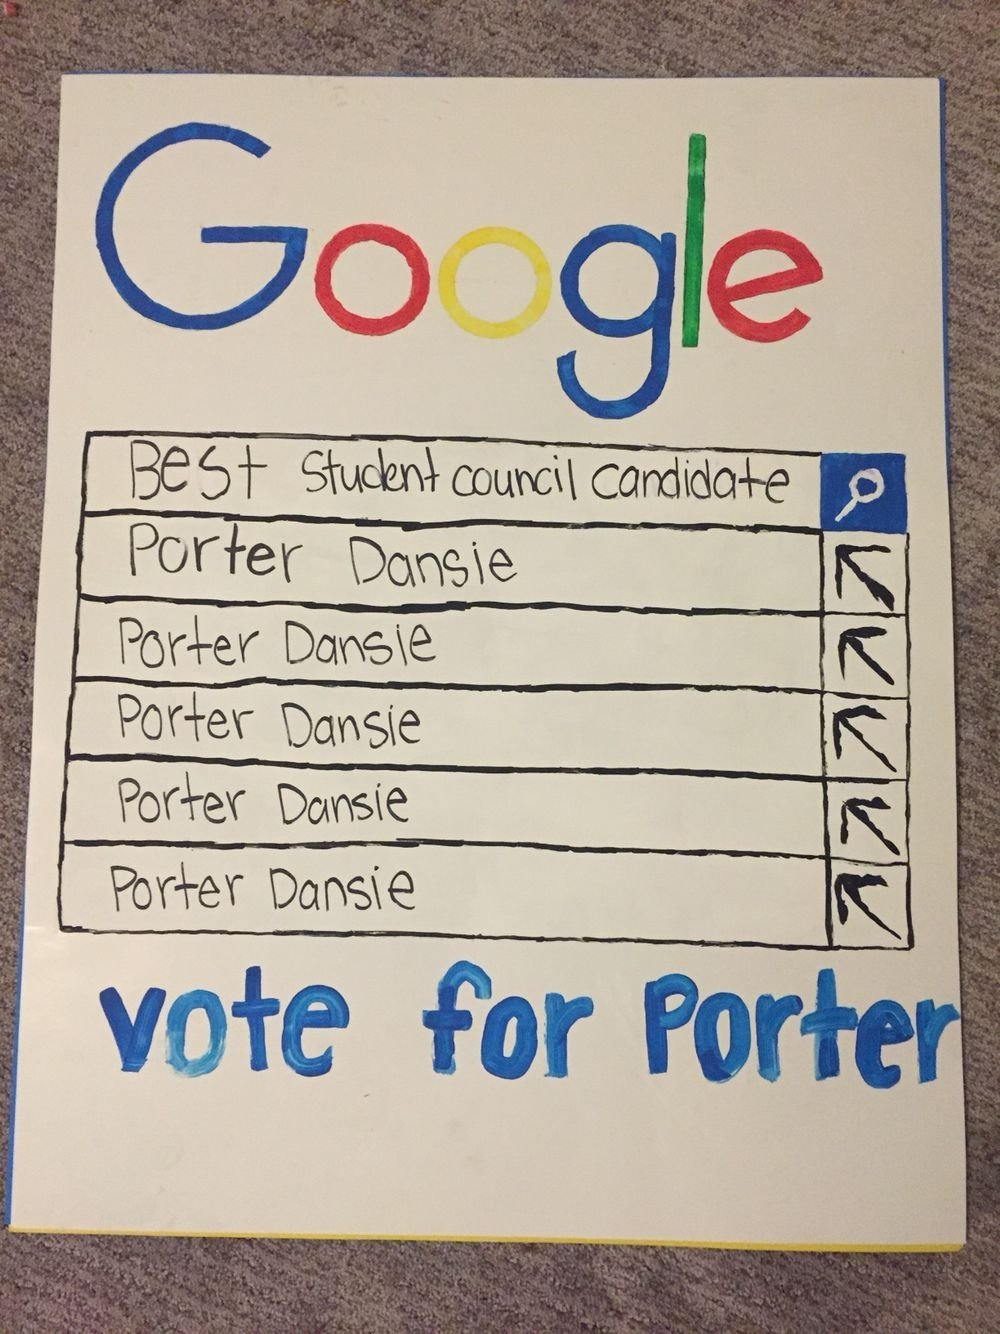 10 Lovely Campaign Ideas For Student Council student council poster google poster student council elections 12 2020